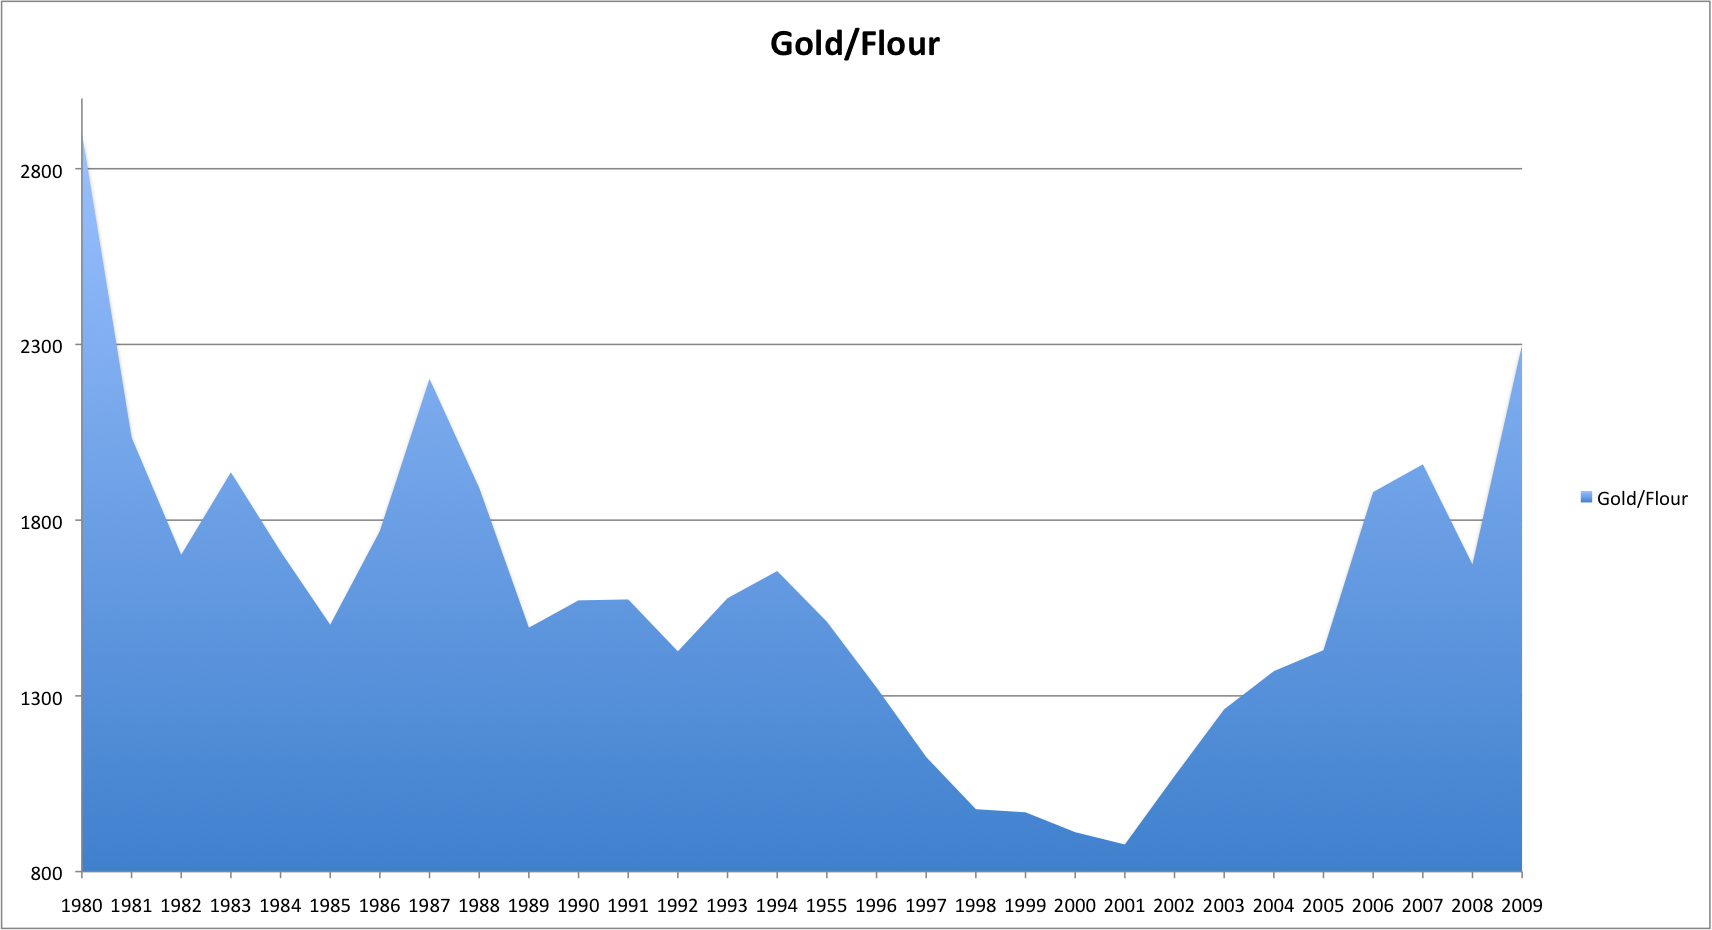 gold/flour ratio